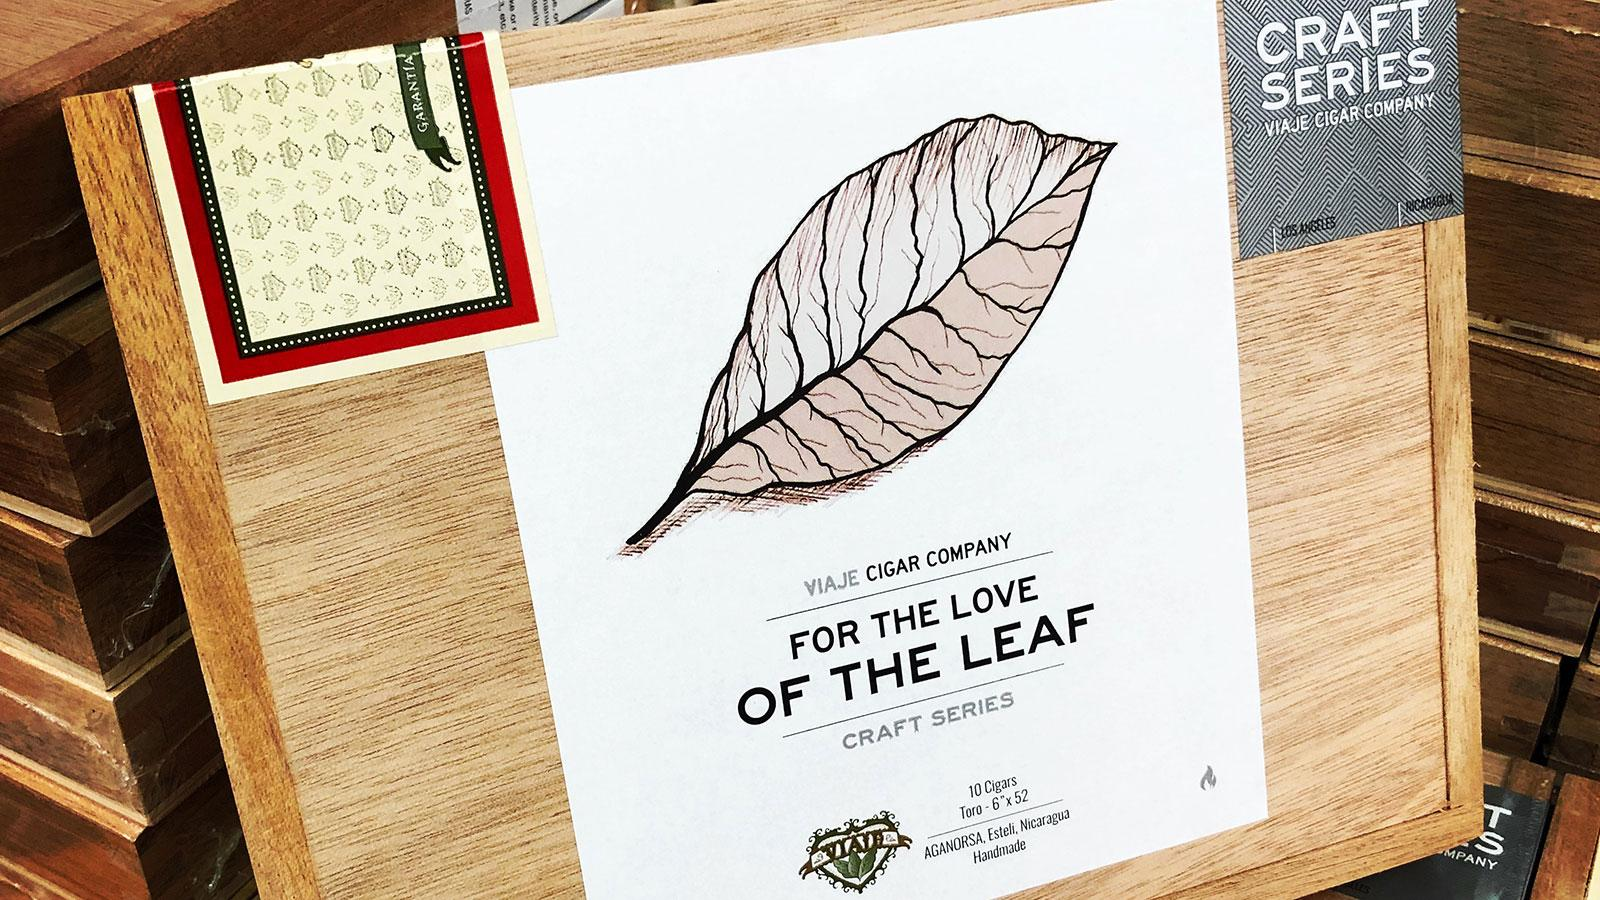 Viaje Releases Second In Craft Series: For The Love Of The Leaf